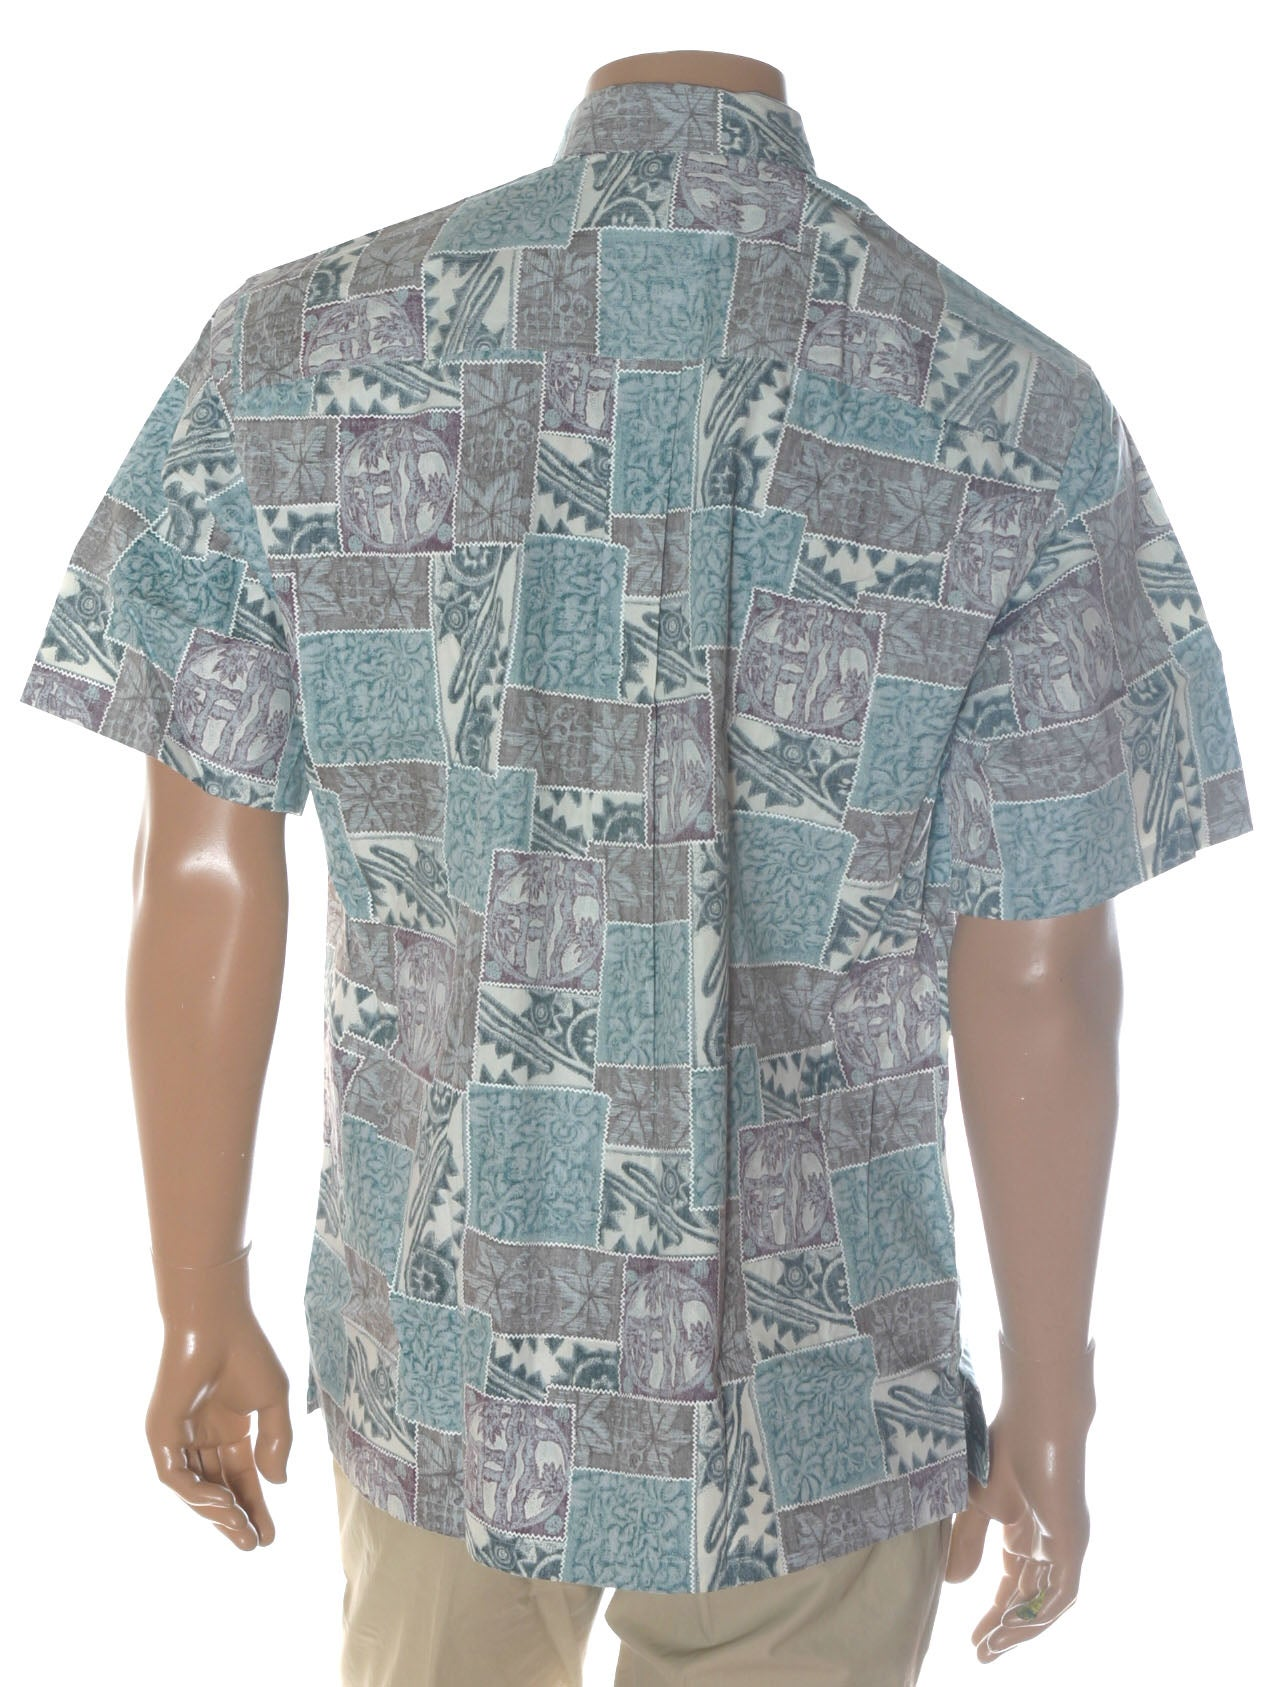 Cooke Street Honolulu Mens Hawaiian Shirt